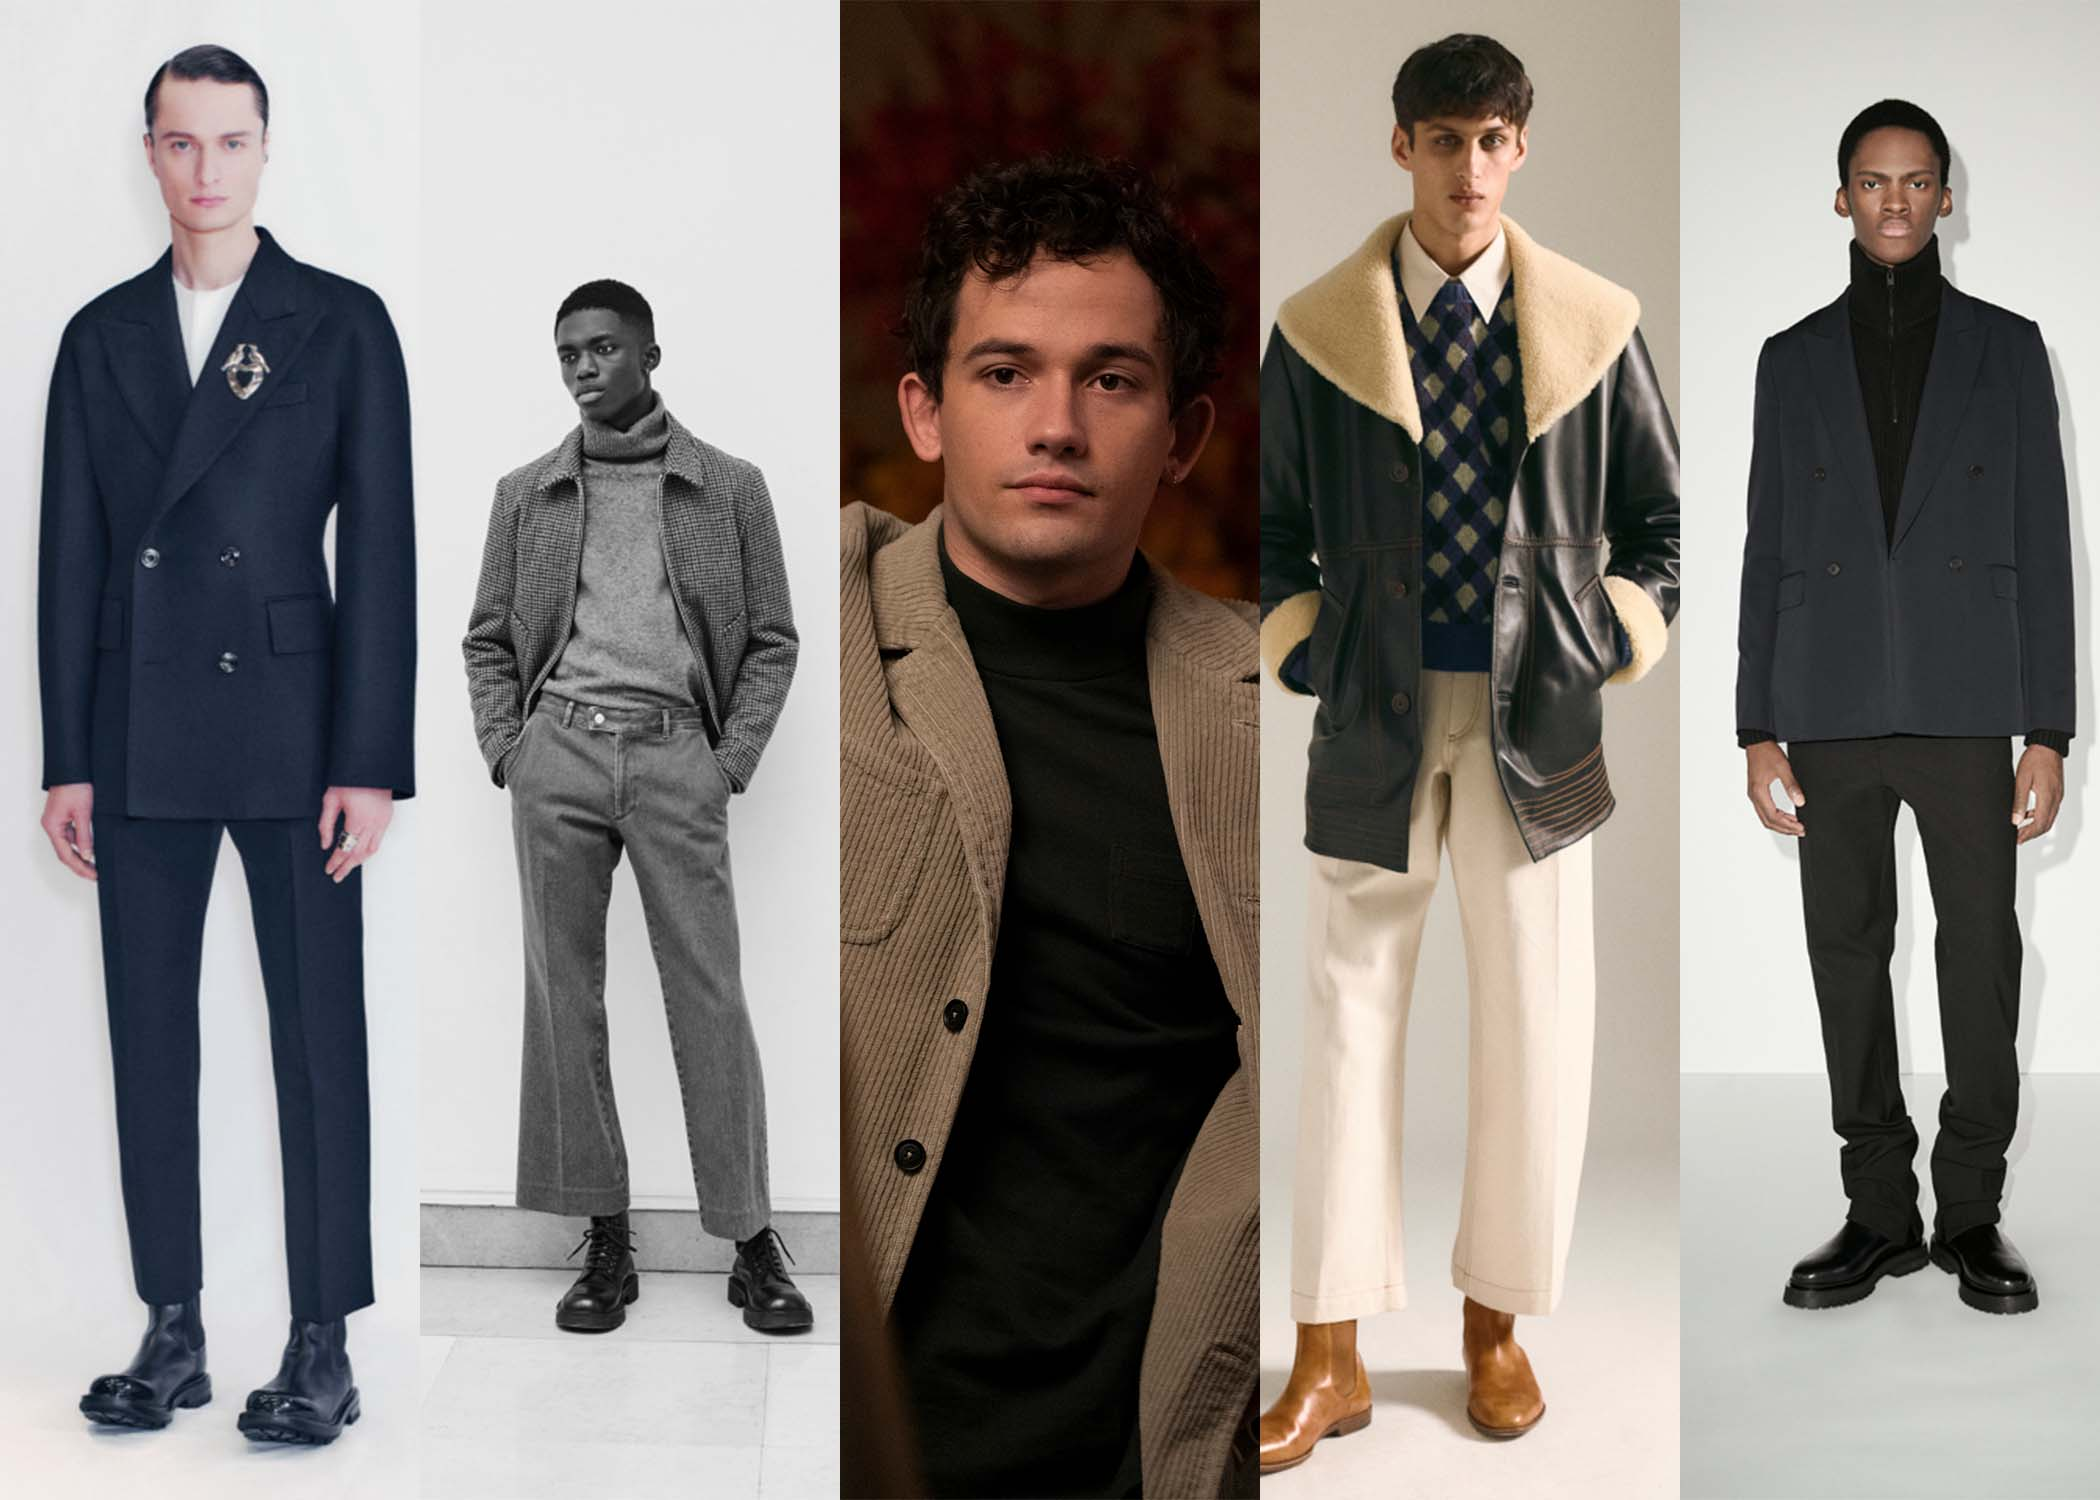 Gossip Girl Reboot Fashion: What Characters Would Wear This Fall